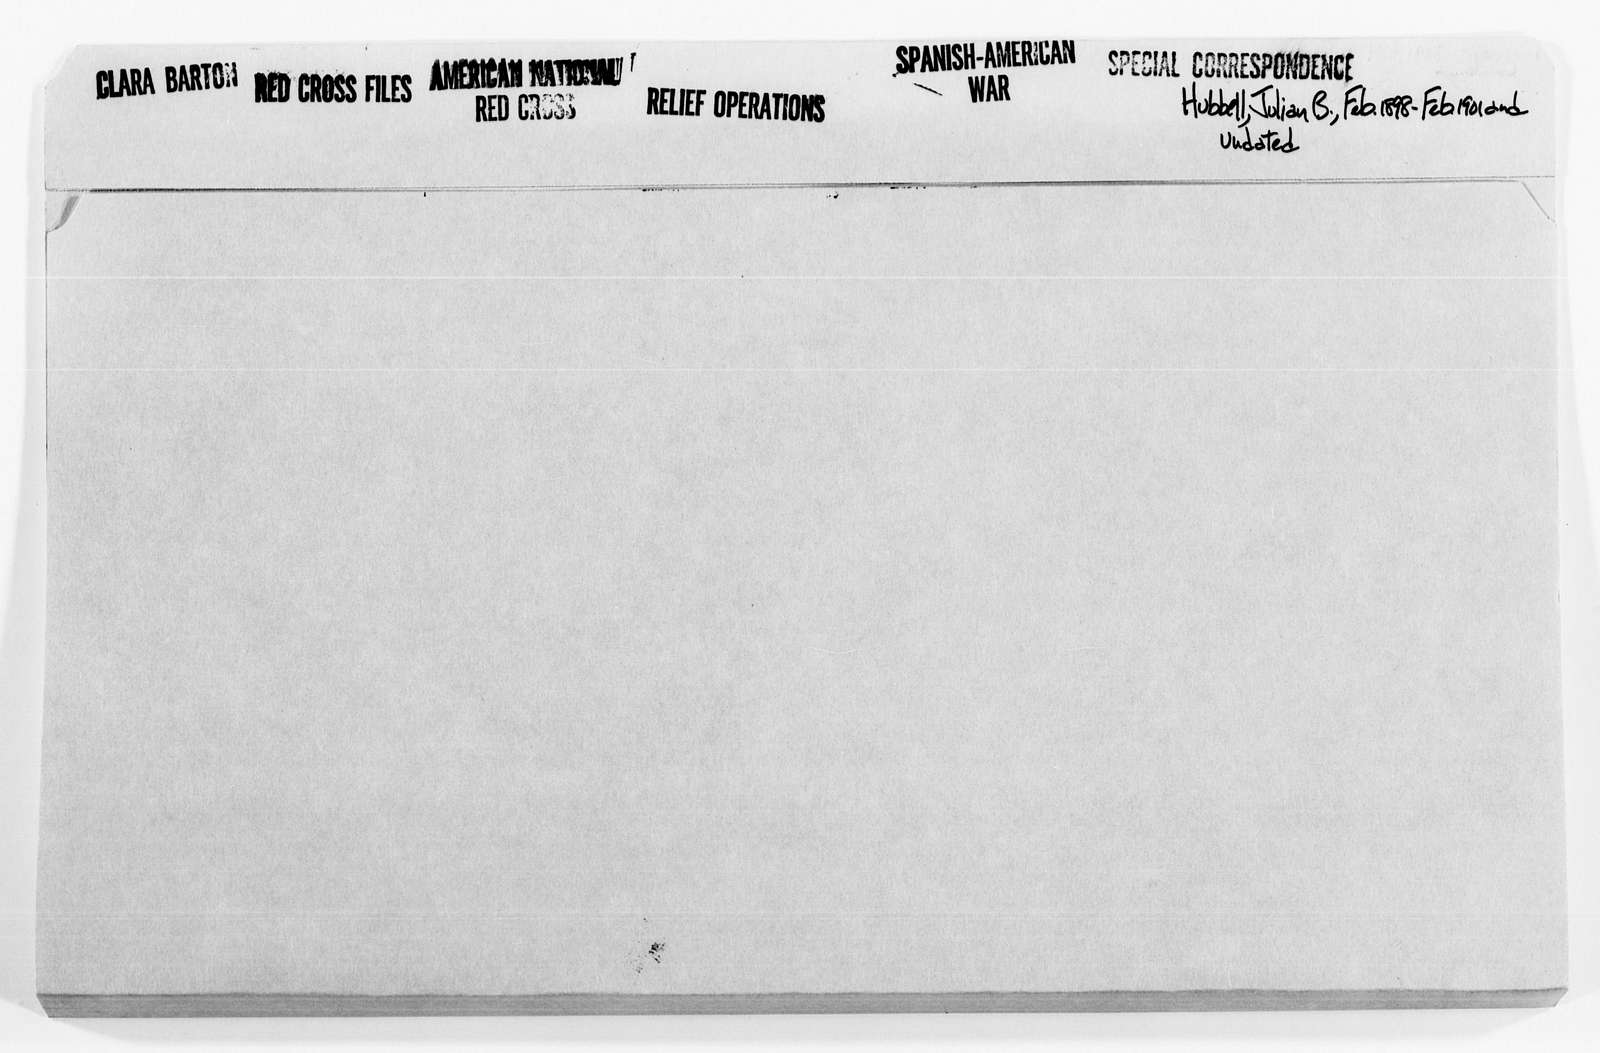 Clara Barton Papers: Red Cross File, 1863-1957; American National Red Cross, 1878-1957; Relief operations; Spanish-American War; Correspondence; Special; Hubbell, Julian B., 1898-1901, undated